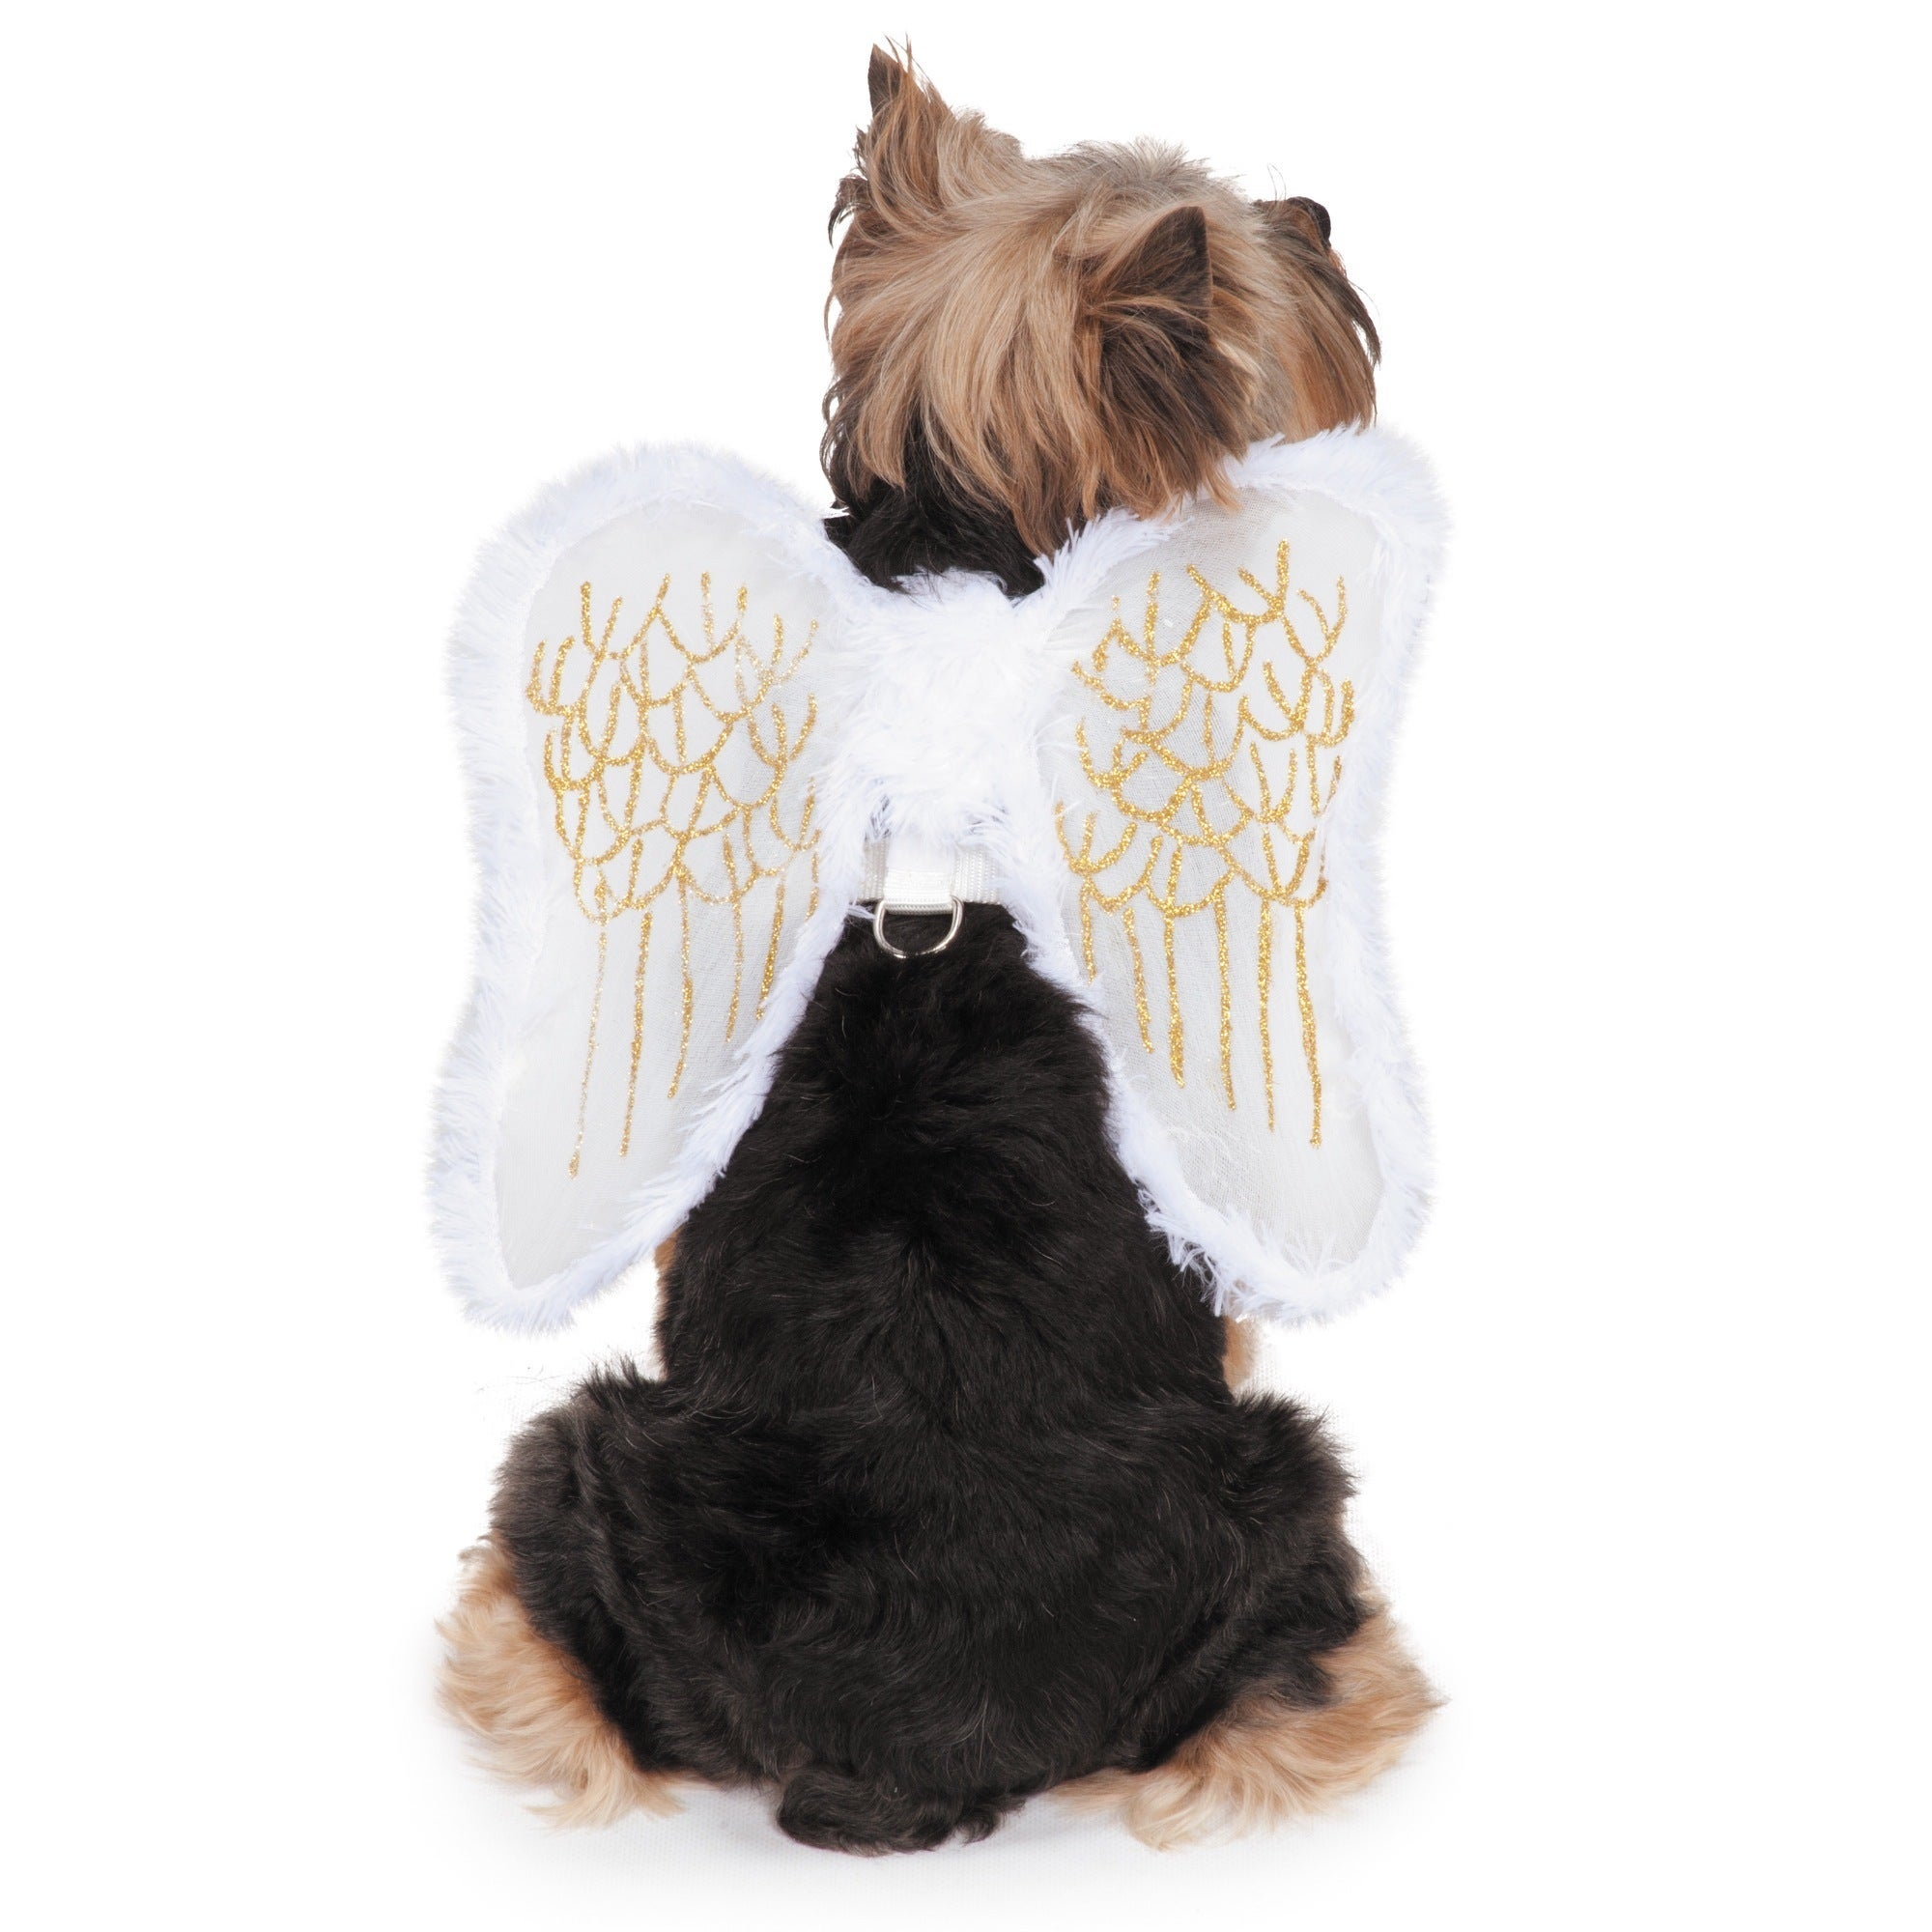 Zack & Zoey Fur-Trimmed Angel Wings Harness for Dogs and ...